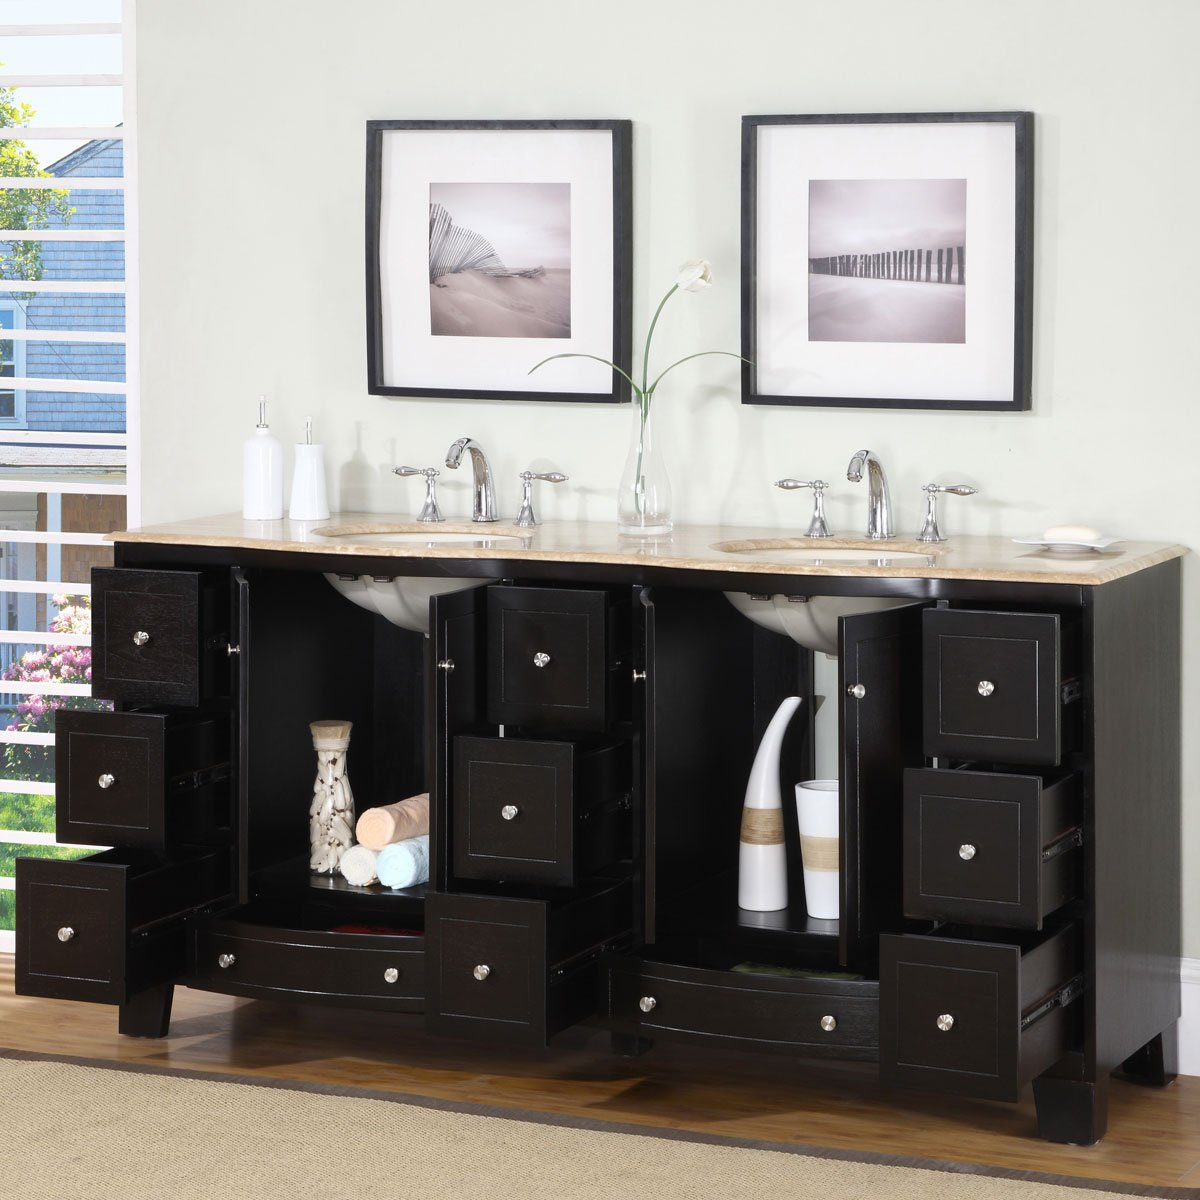 Amazon.com: Silkroad Exclusive Countertop Travertine Stone Double Sink  Bathroom Vanity With Dual Cabinet, 72 Inch: Home U0026 Kitchen